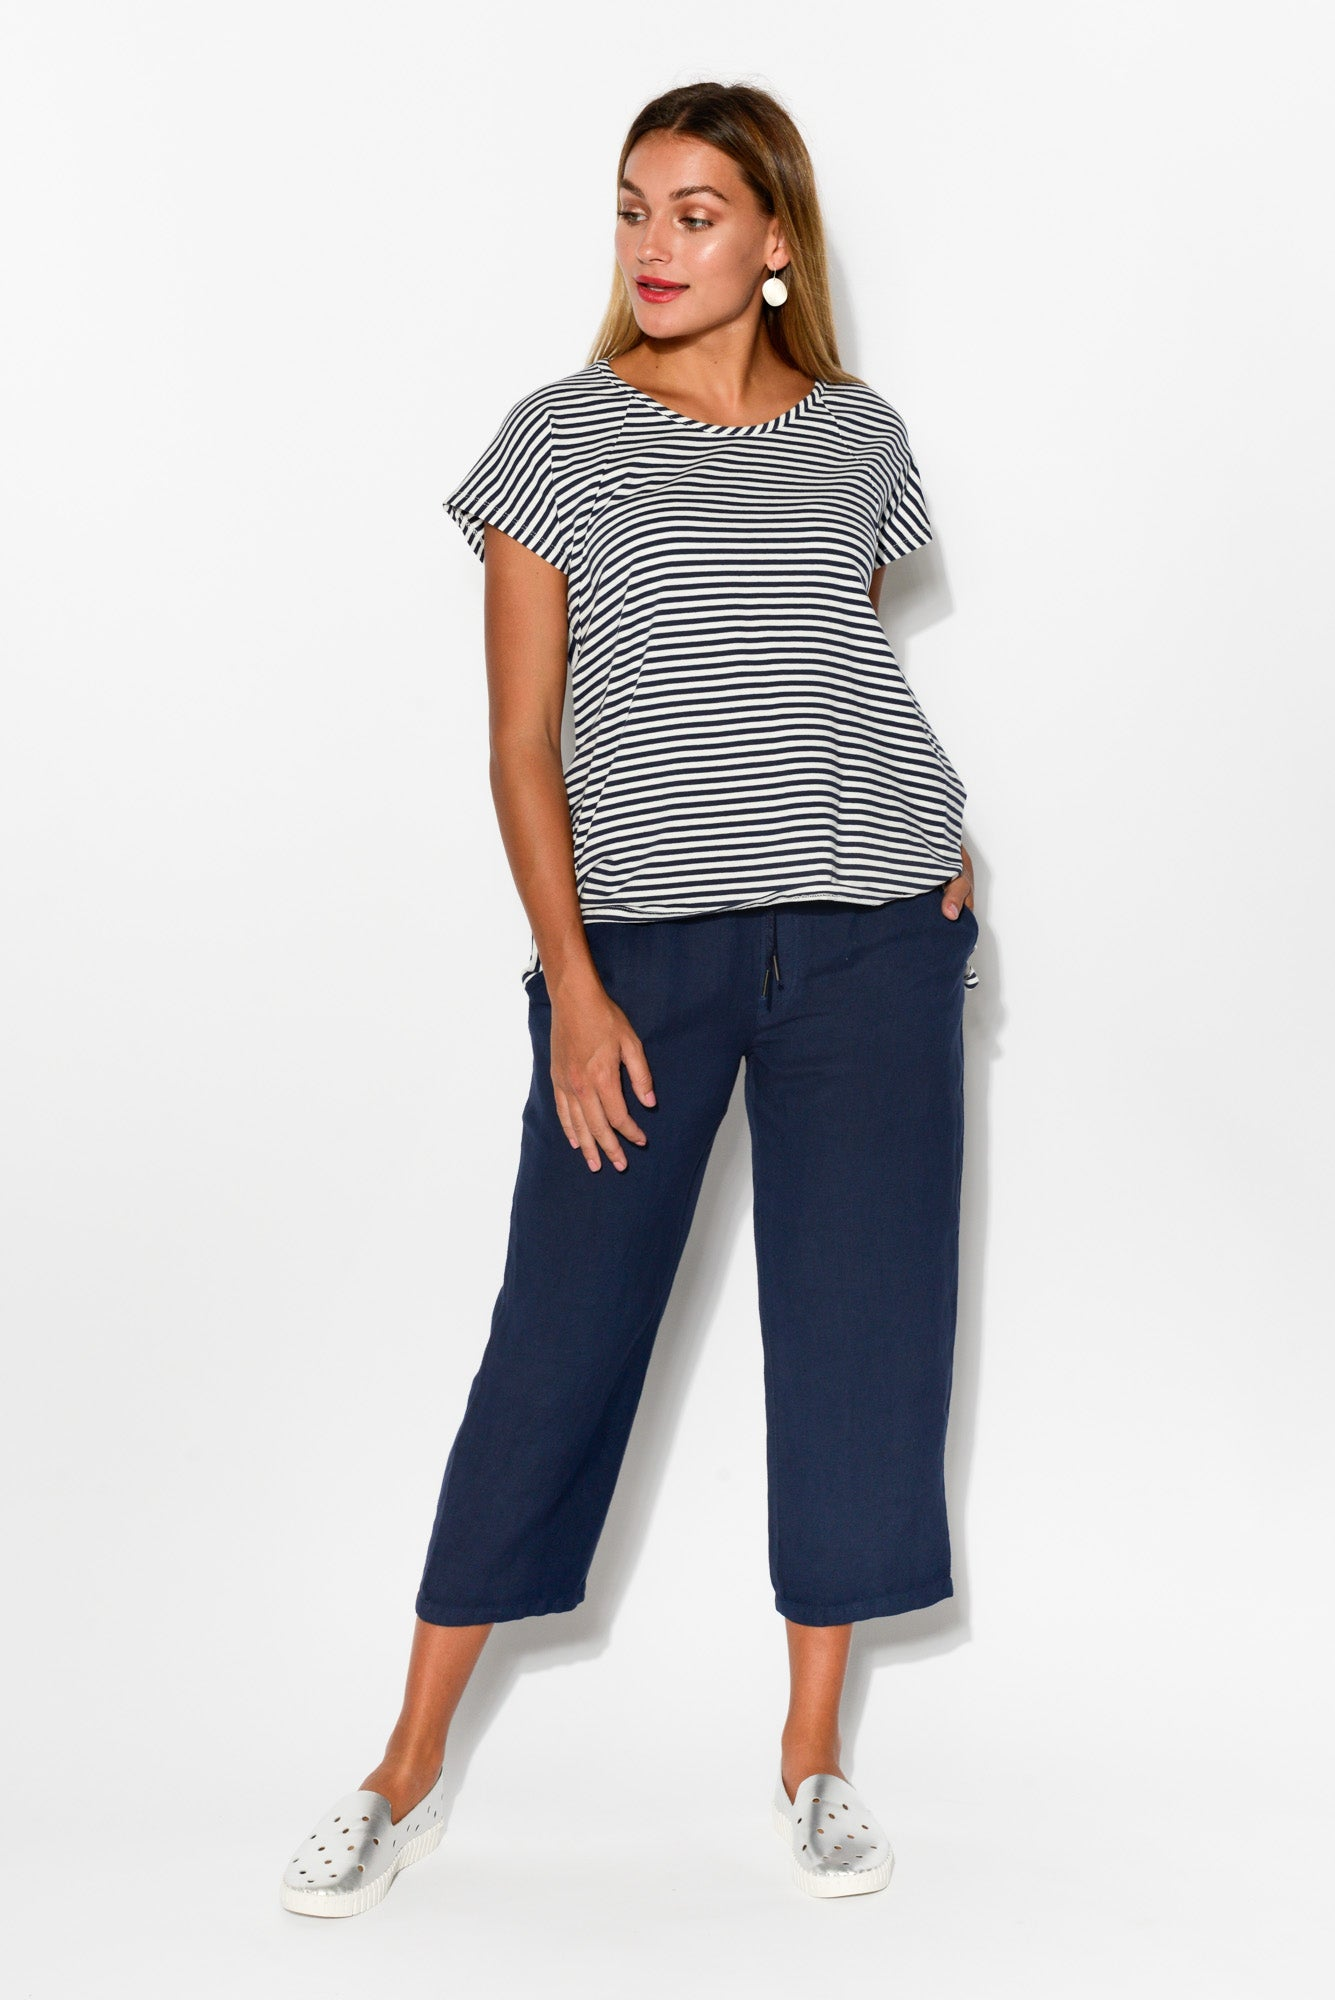 Navy Cat 3/4 Pant - Blue Bungalow